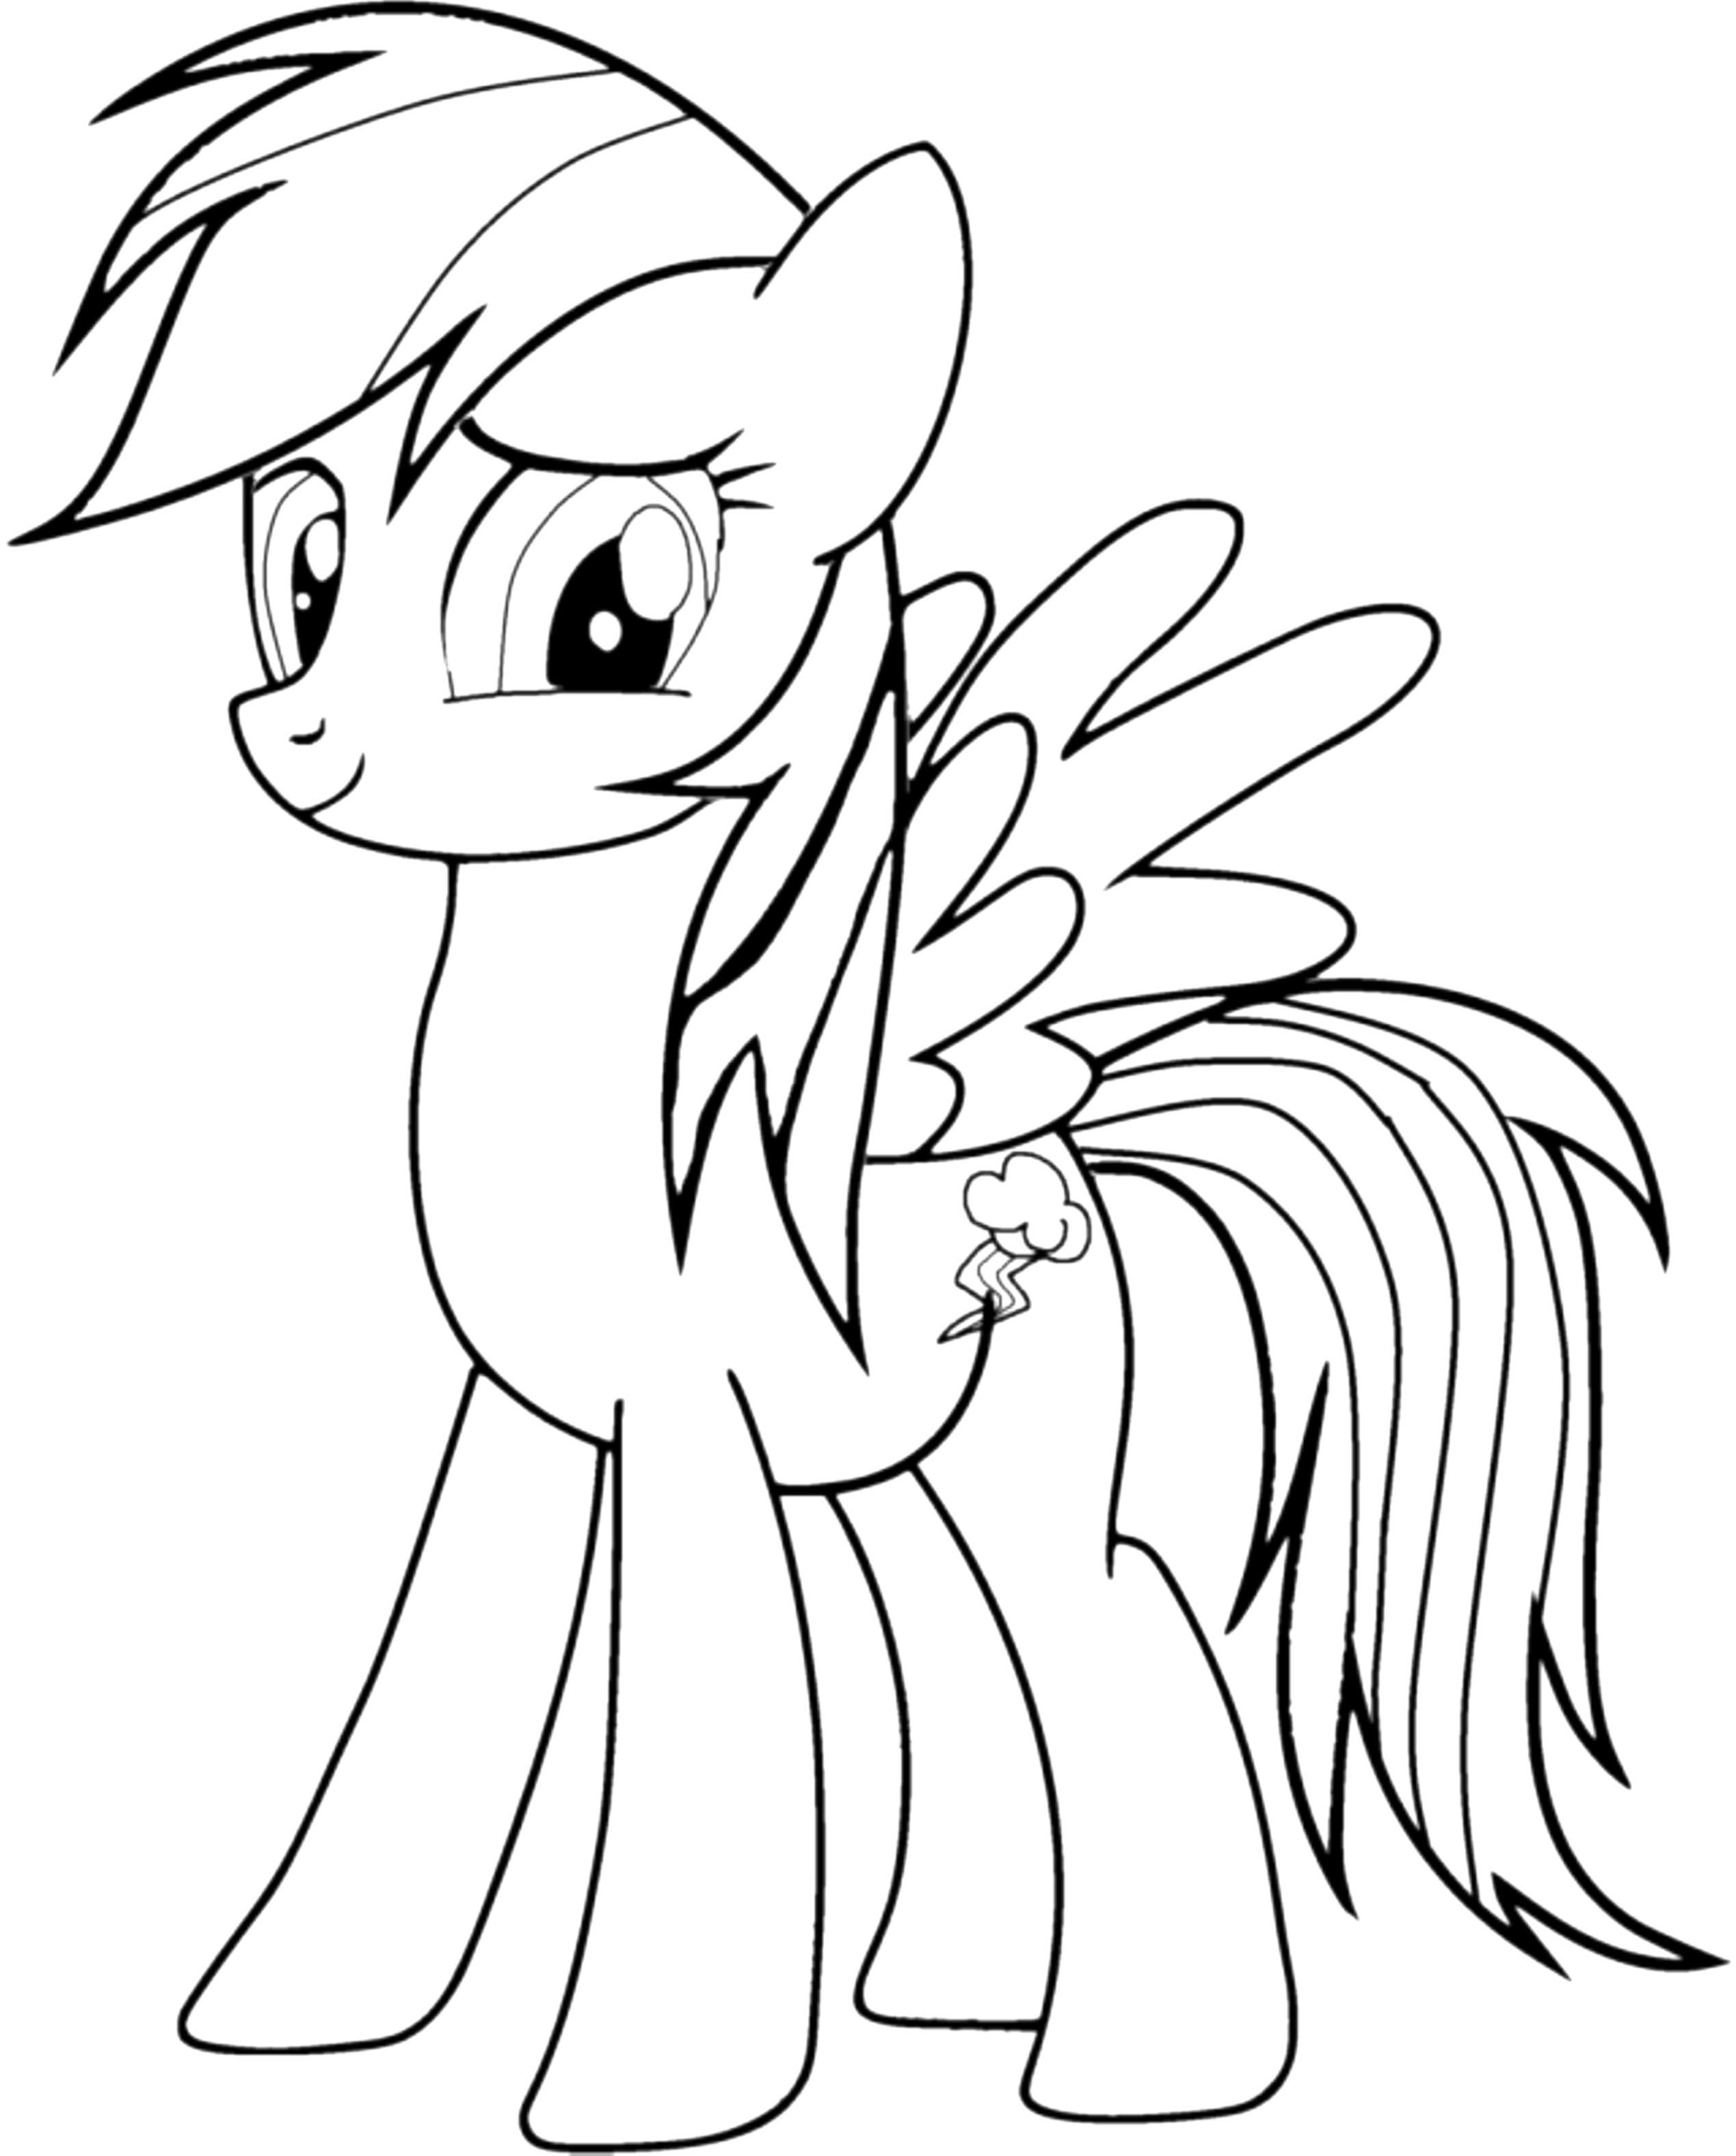 rainbow dash colouring pages rainbow dash coloring pages minister coloring colouring rainbow pages dash